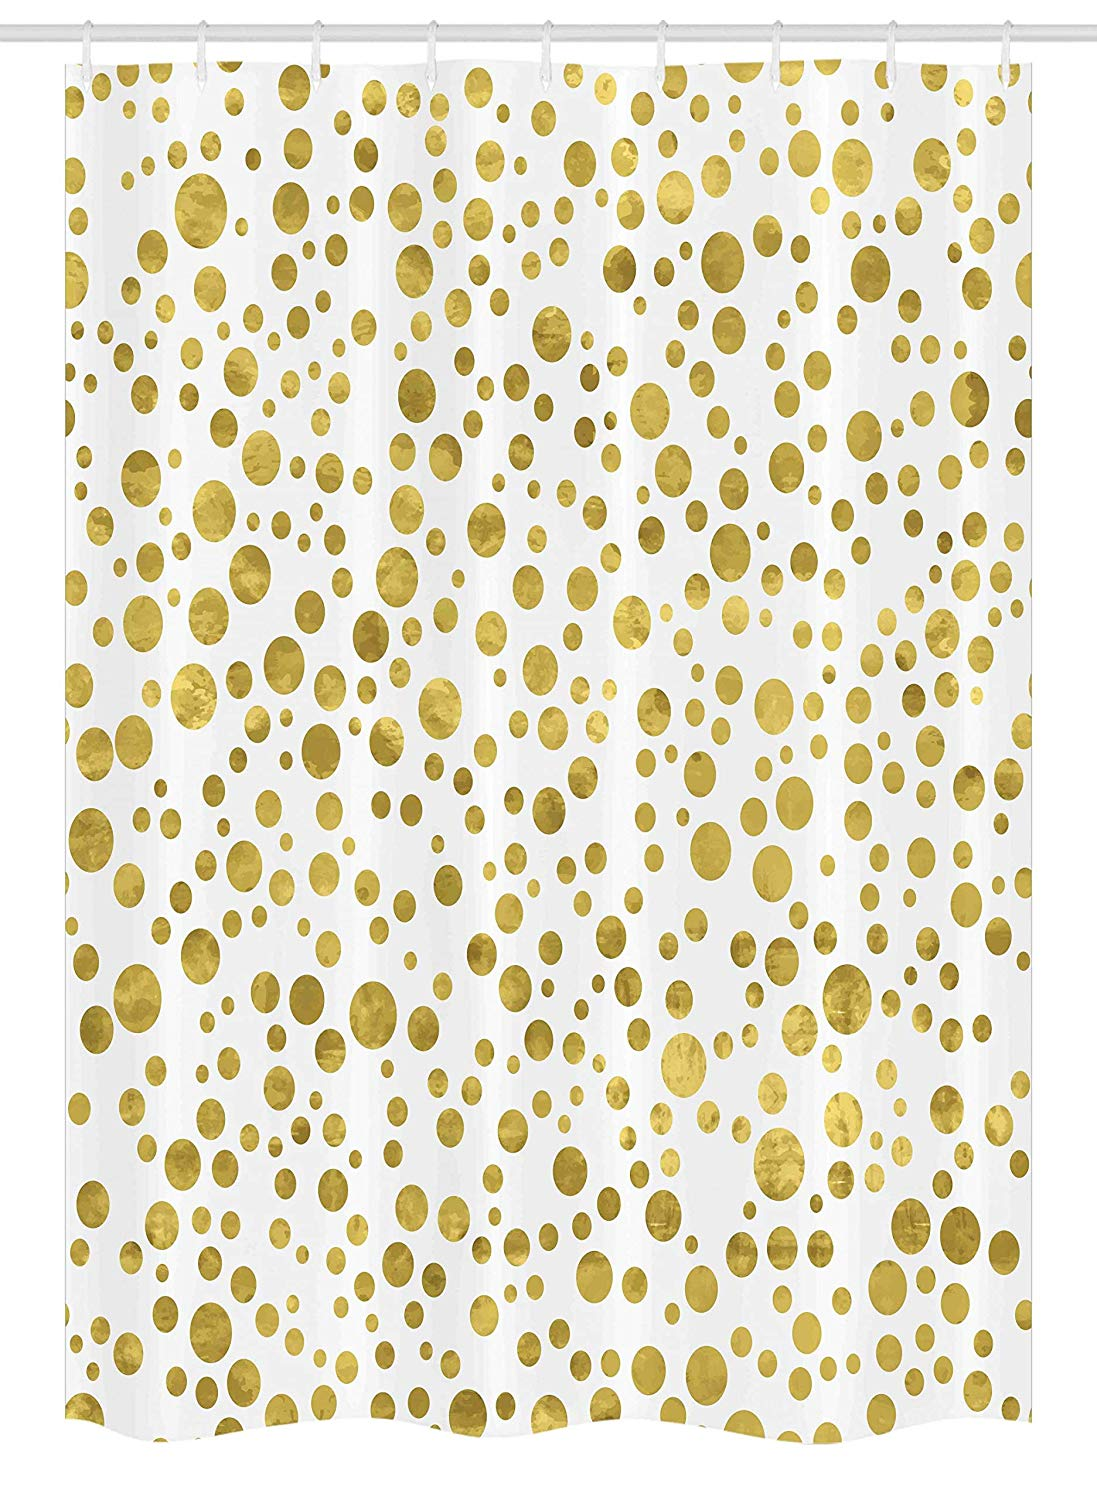 Ambesonne Polka Dots Stall Shower Curtain, Illustration of Round Speckled Forms in Irregular Layout Artistic Vintage Style, Fabric Bathroom Decor Set with Hooks, 54 W x 78 L inches, Gold White